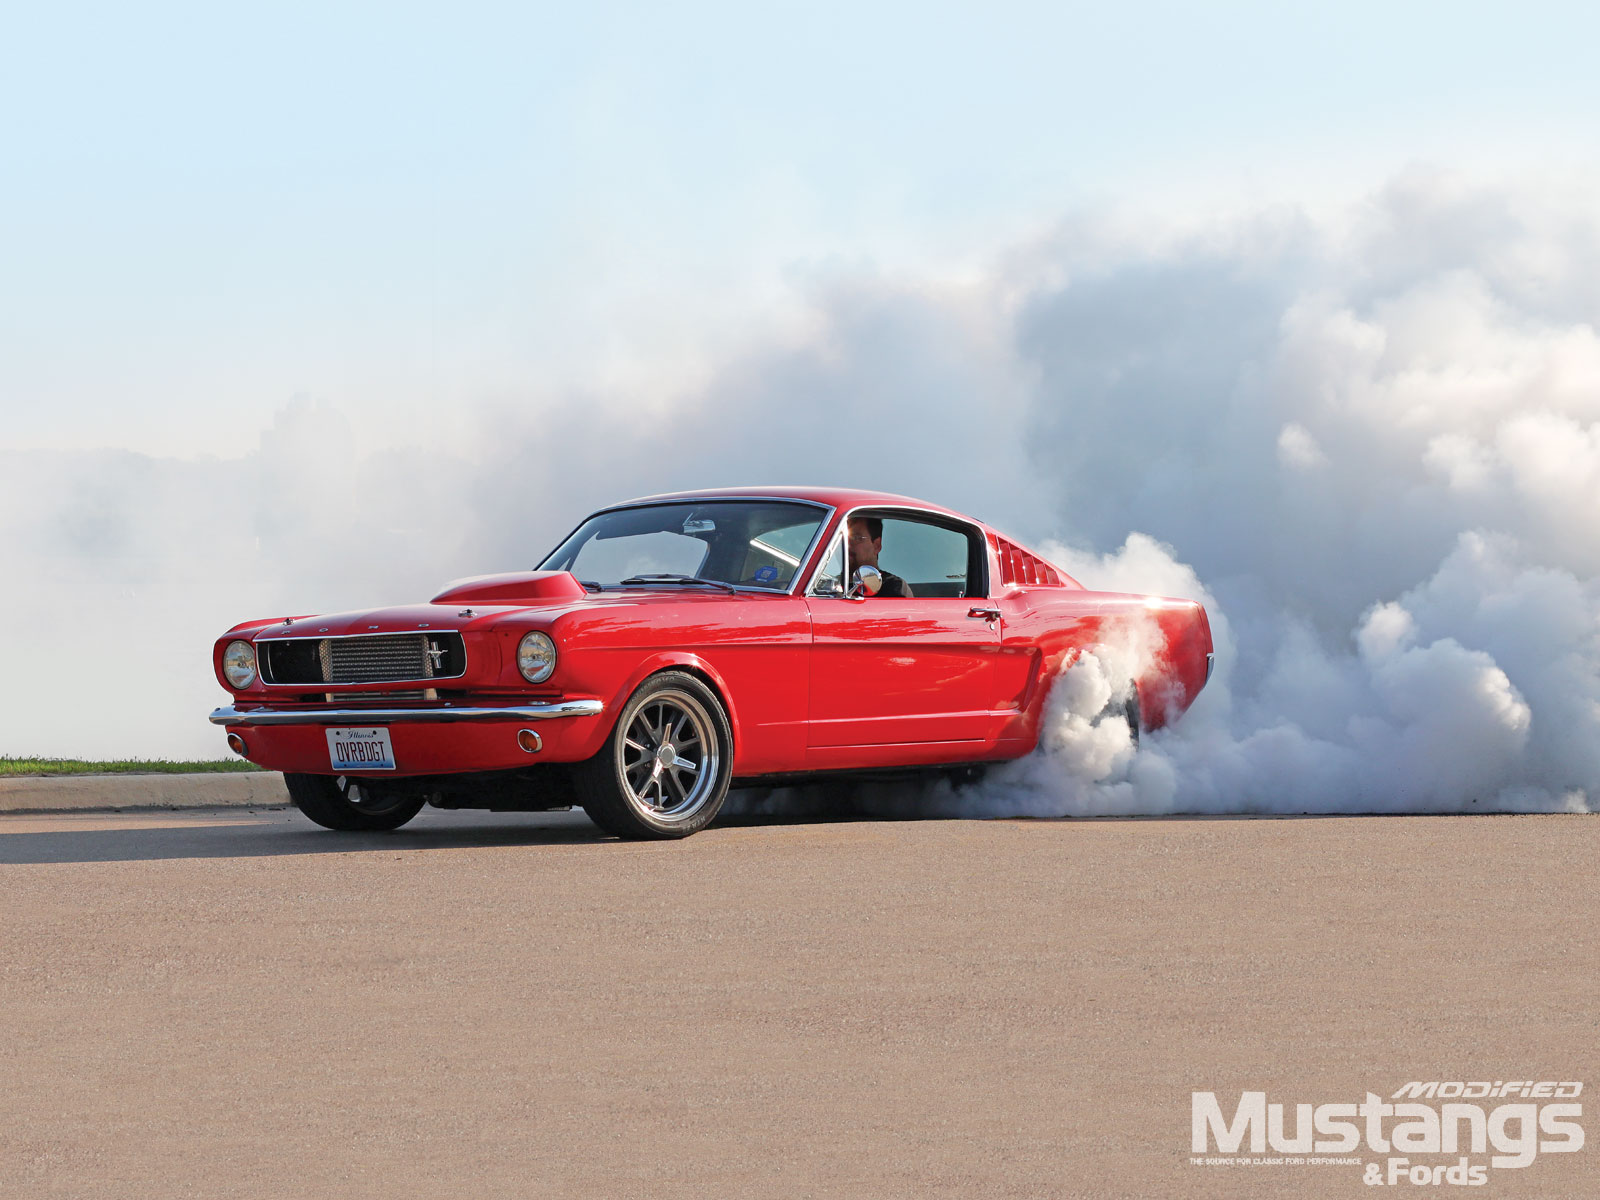 1965 Ford Mustang Fastback Burnout